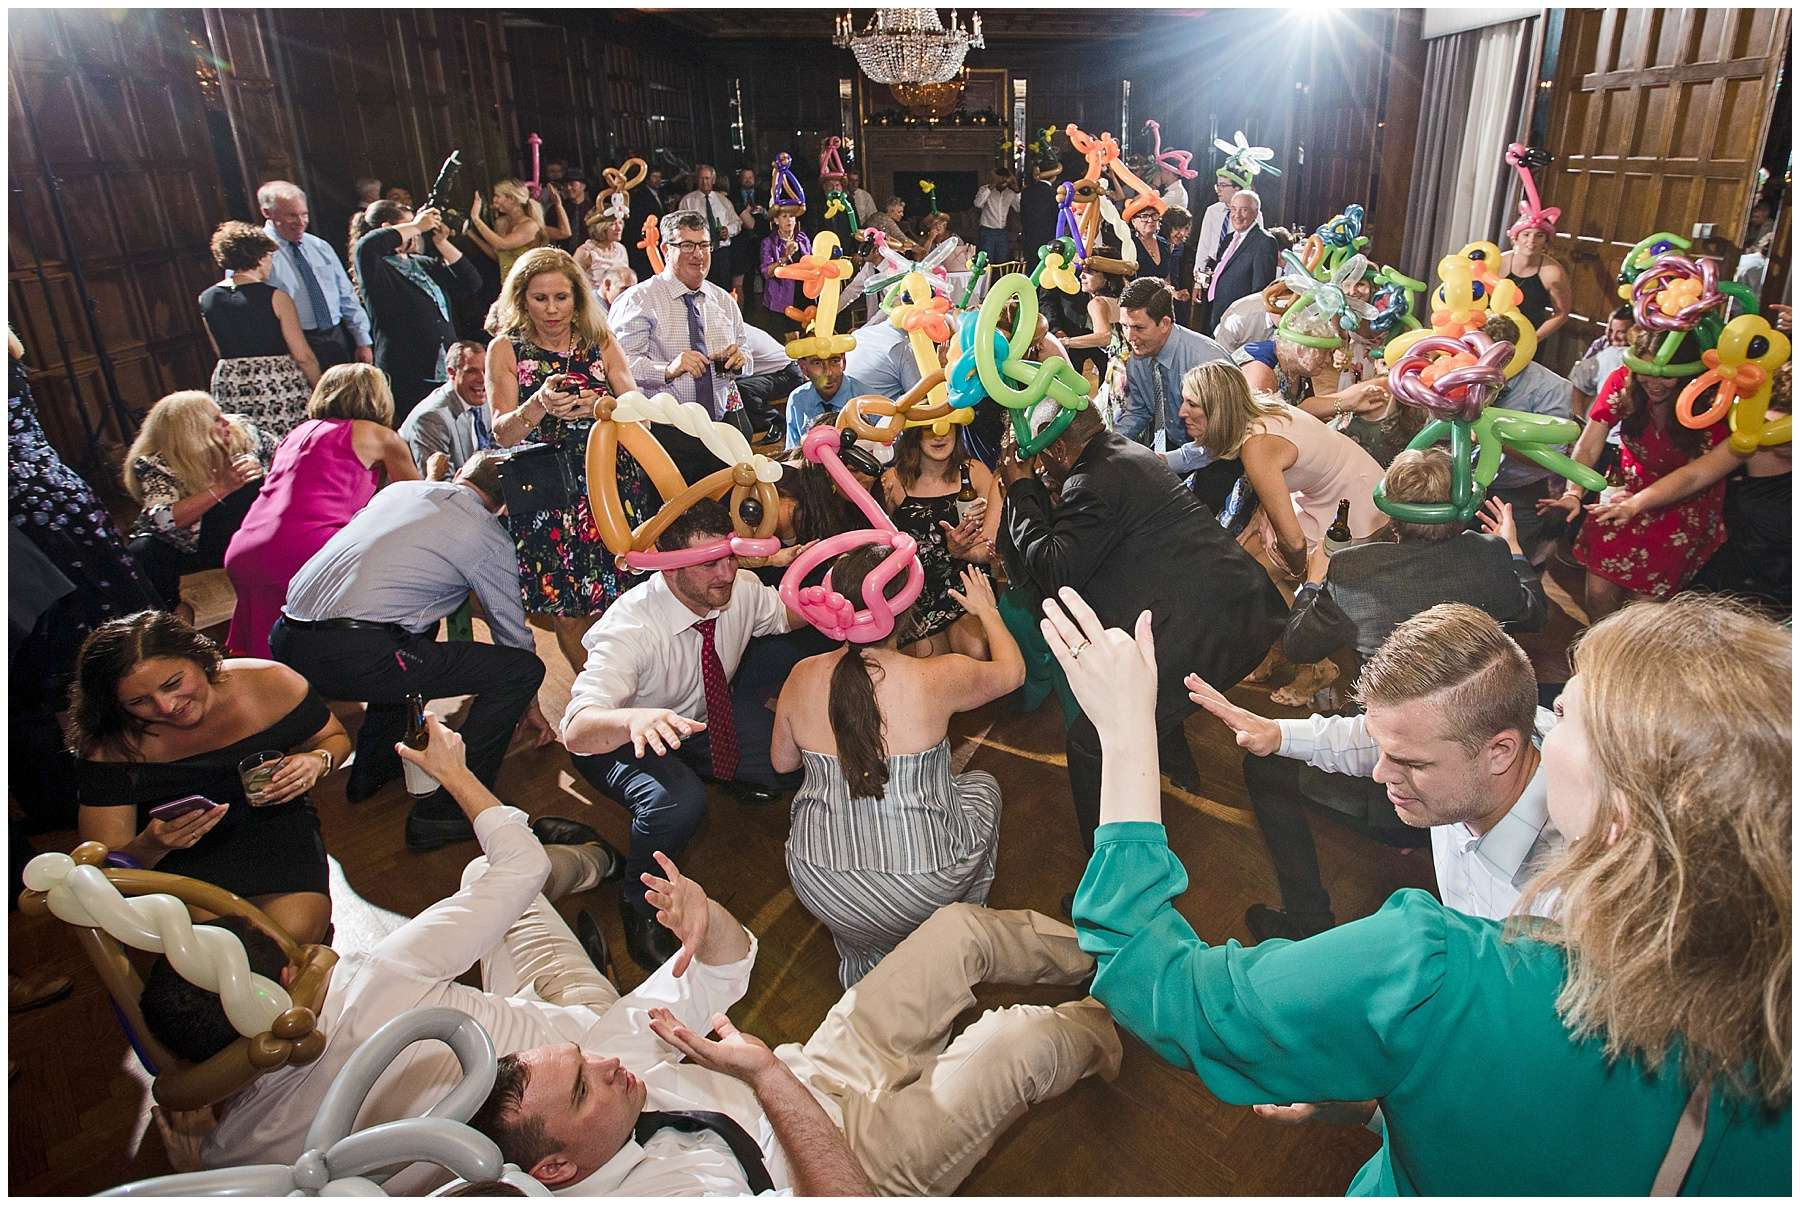 a large group of guests wearing colorful balloon hats dancing at a wedding reception